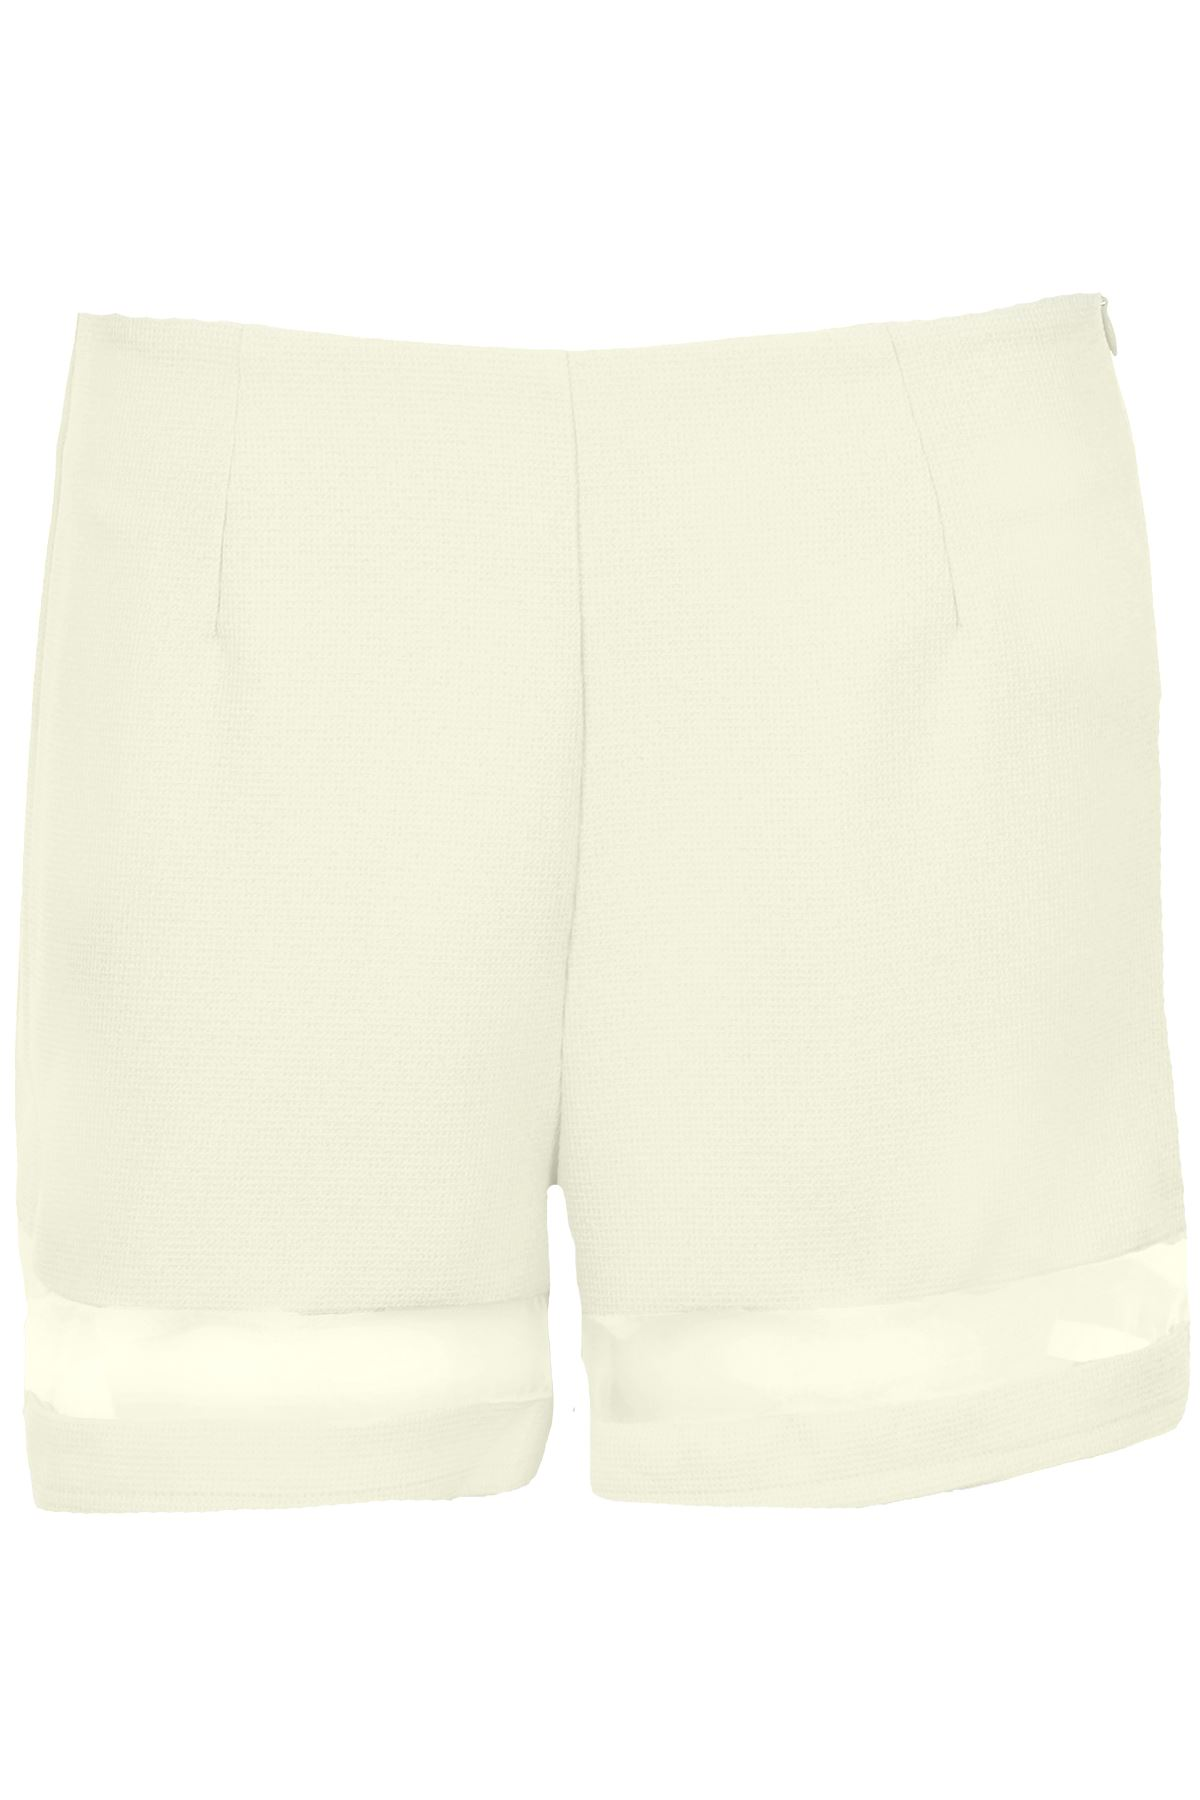 Women/'s Short Sleeve Mesh Panel Ladies Neon Textured Party Shorts and Top